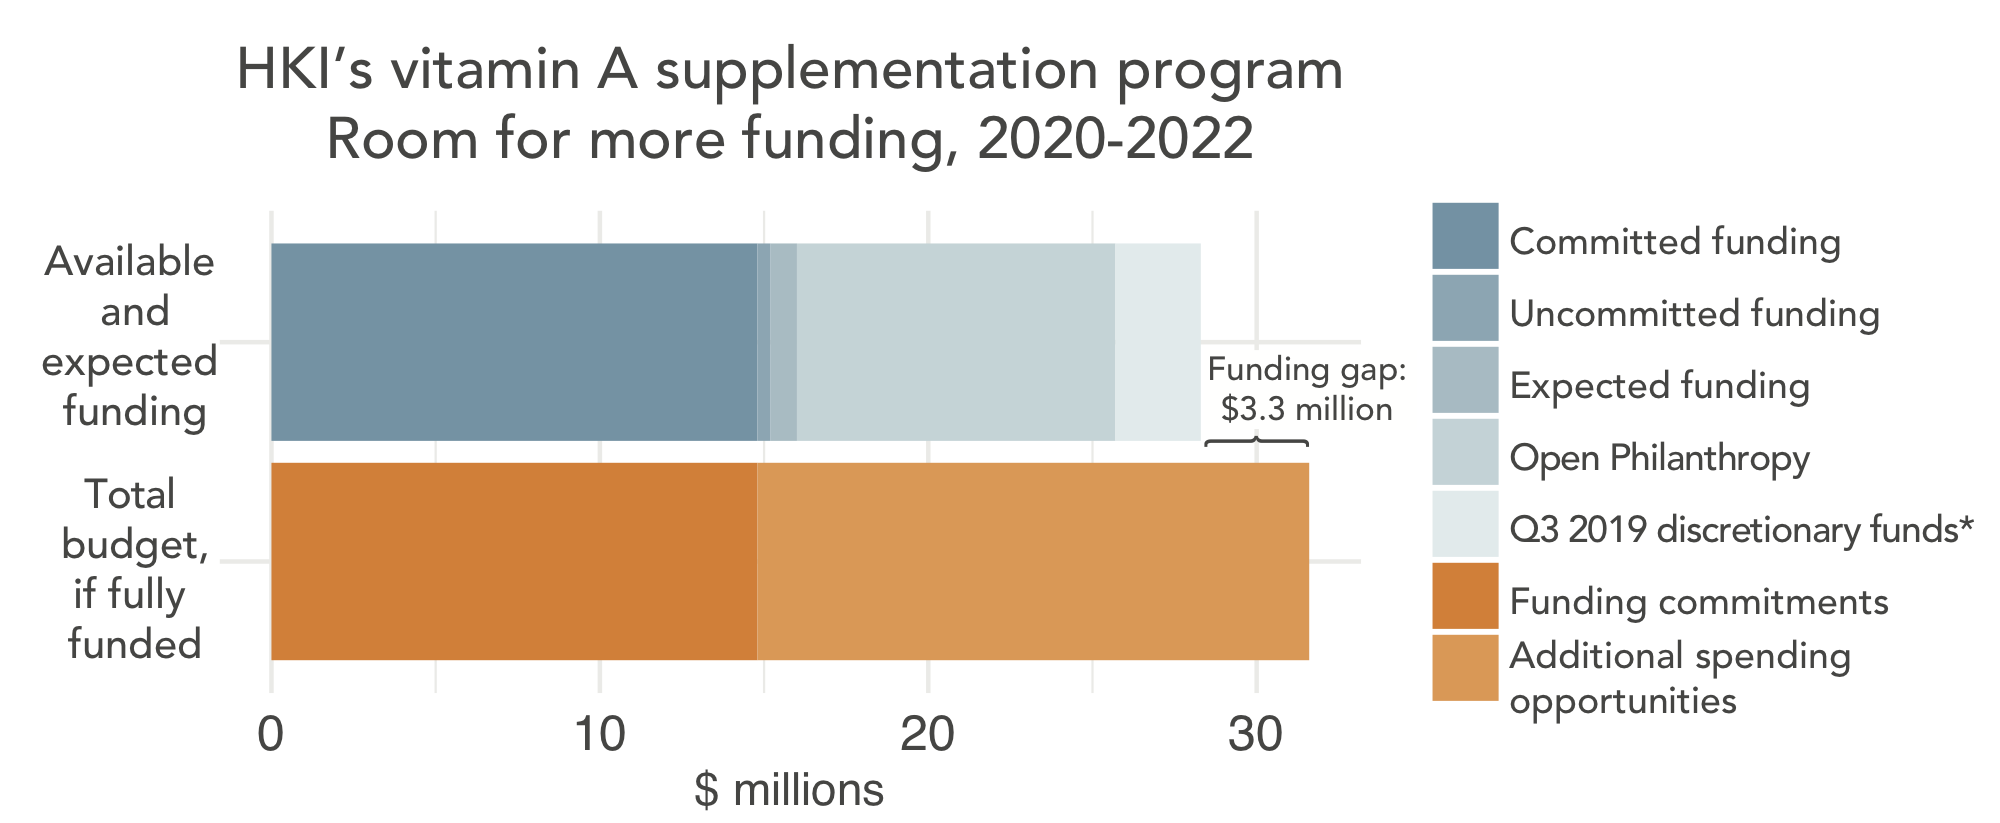 Room for more funding for HKI's VAS program 2020-2022